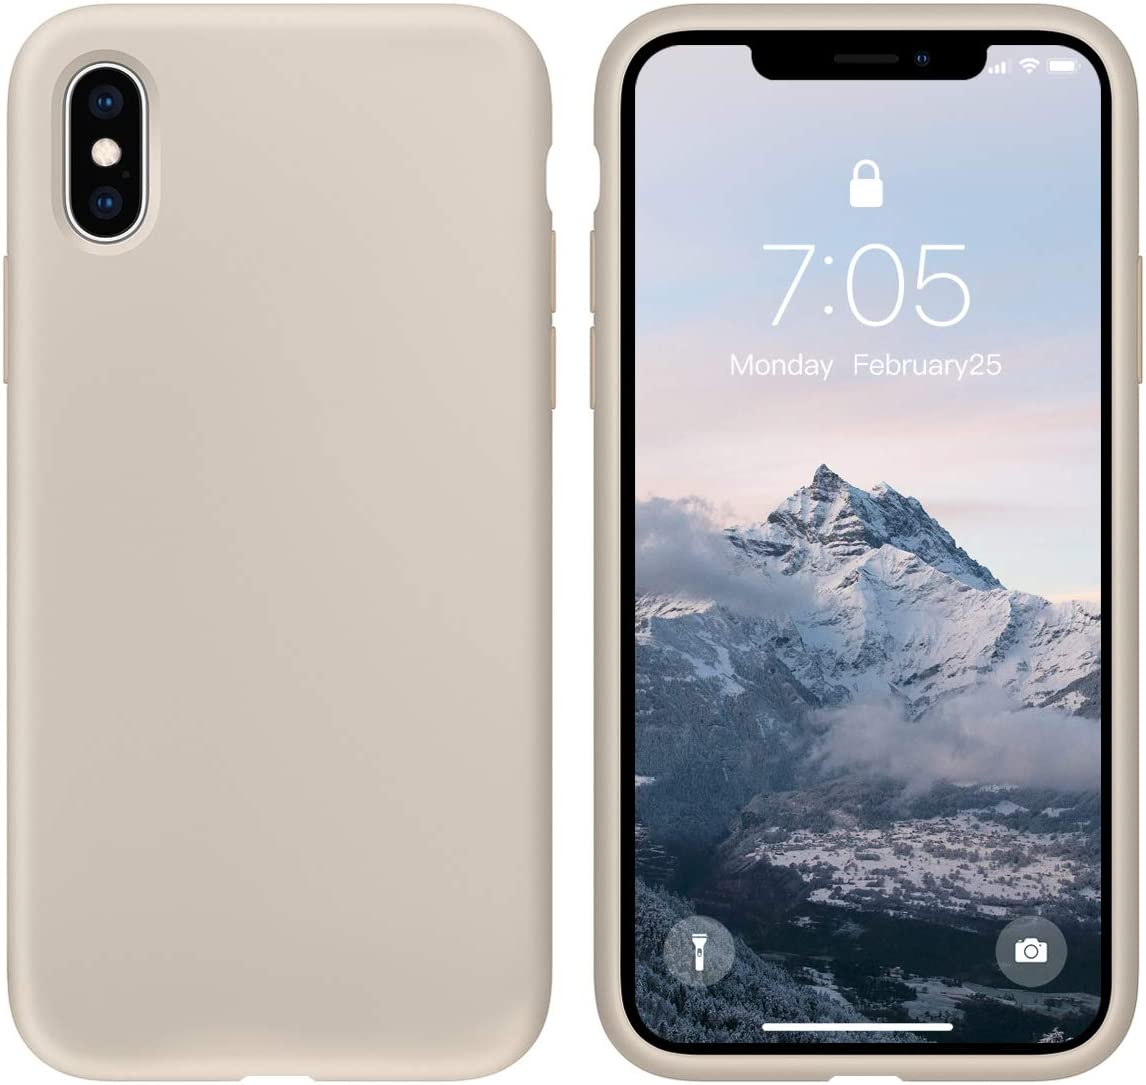 OUXUL Case for iPhone X/iPhone Xs Liquid Silicone Gel Rubber Phone Case,iPhone X/iPhone Xs 5.8 Inch Full Body Slim Soft Microfiber Lining Protective Case(Stone)